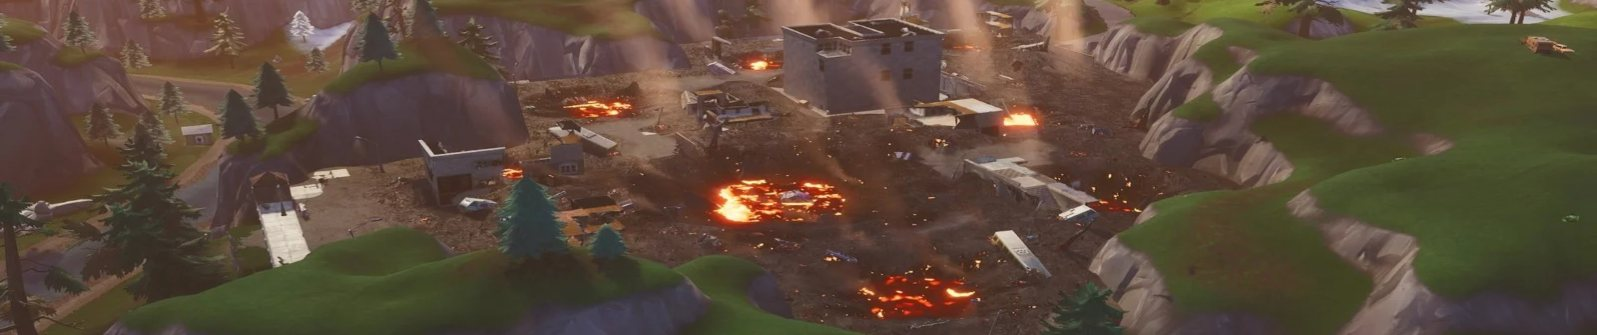 Tilted Towers Destroyed Season 8 4K Background